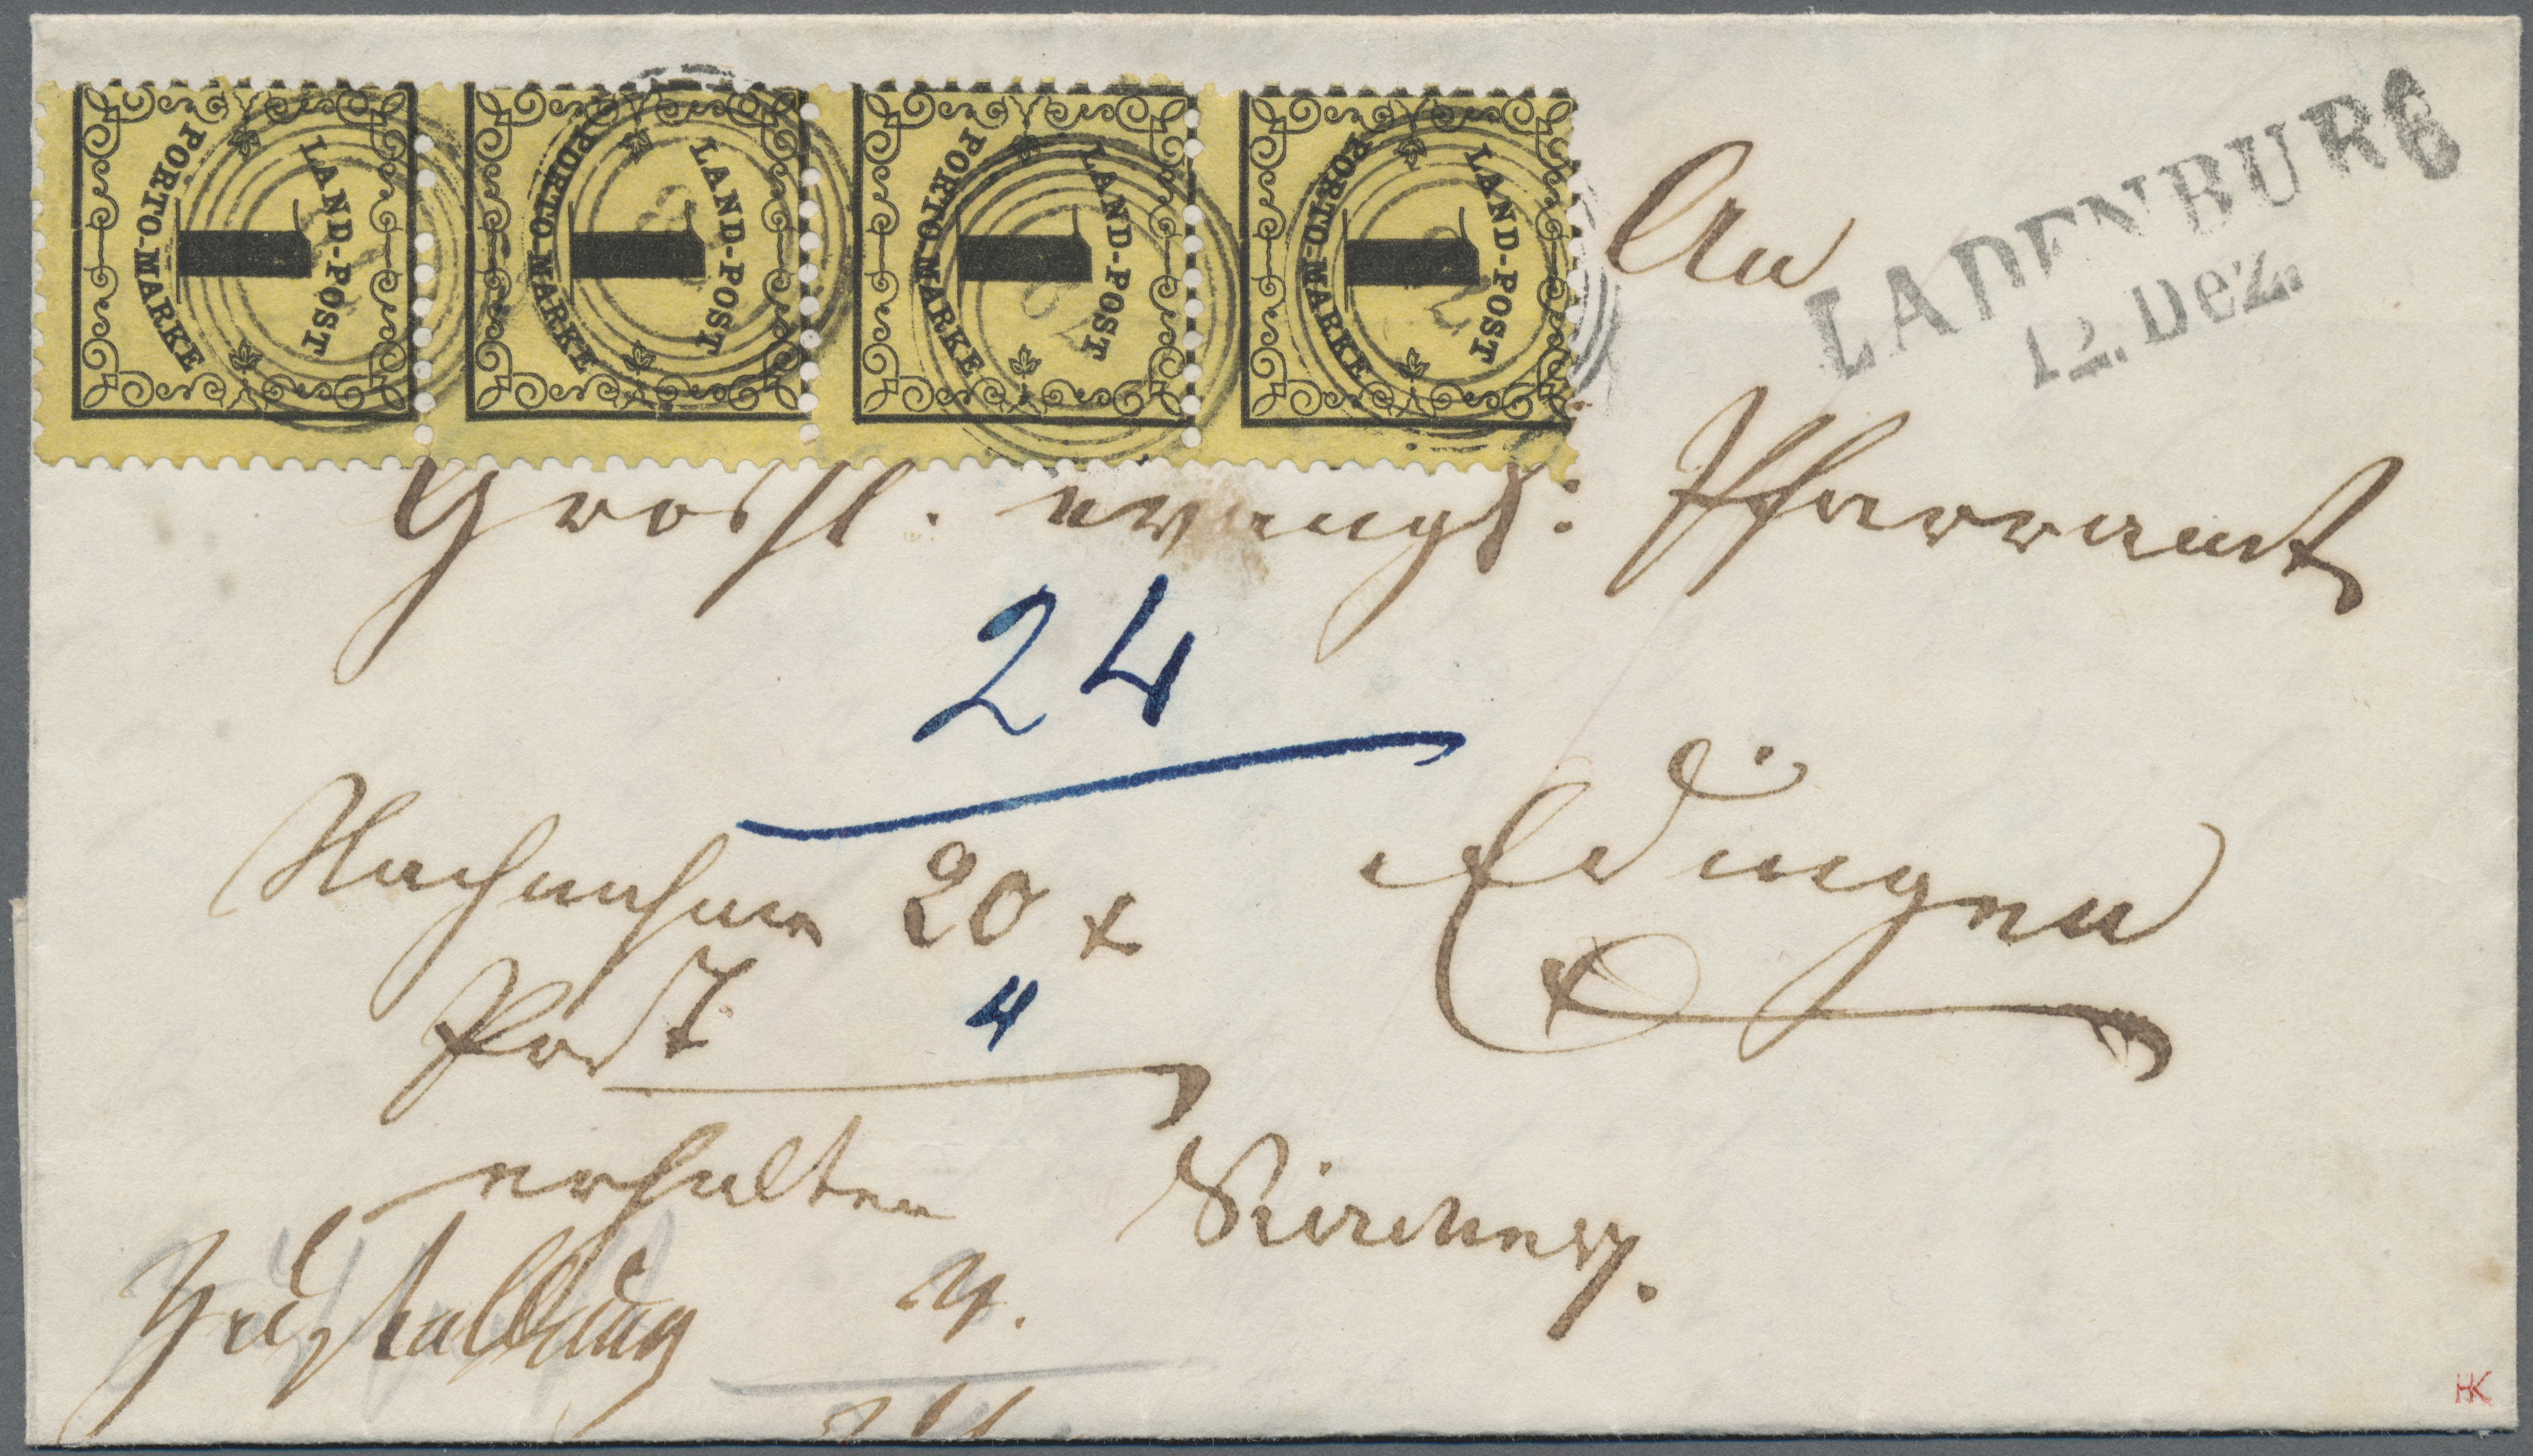 Lot 00111 - Baden - Landpostmarken  -  Auktionshaus Christoph Gärtner GmbH & Co. KG Intenational Rarities and contains lots from the collection of Peter Zgonc